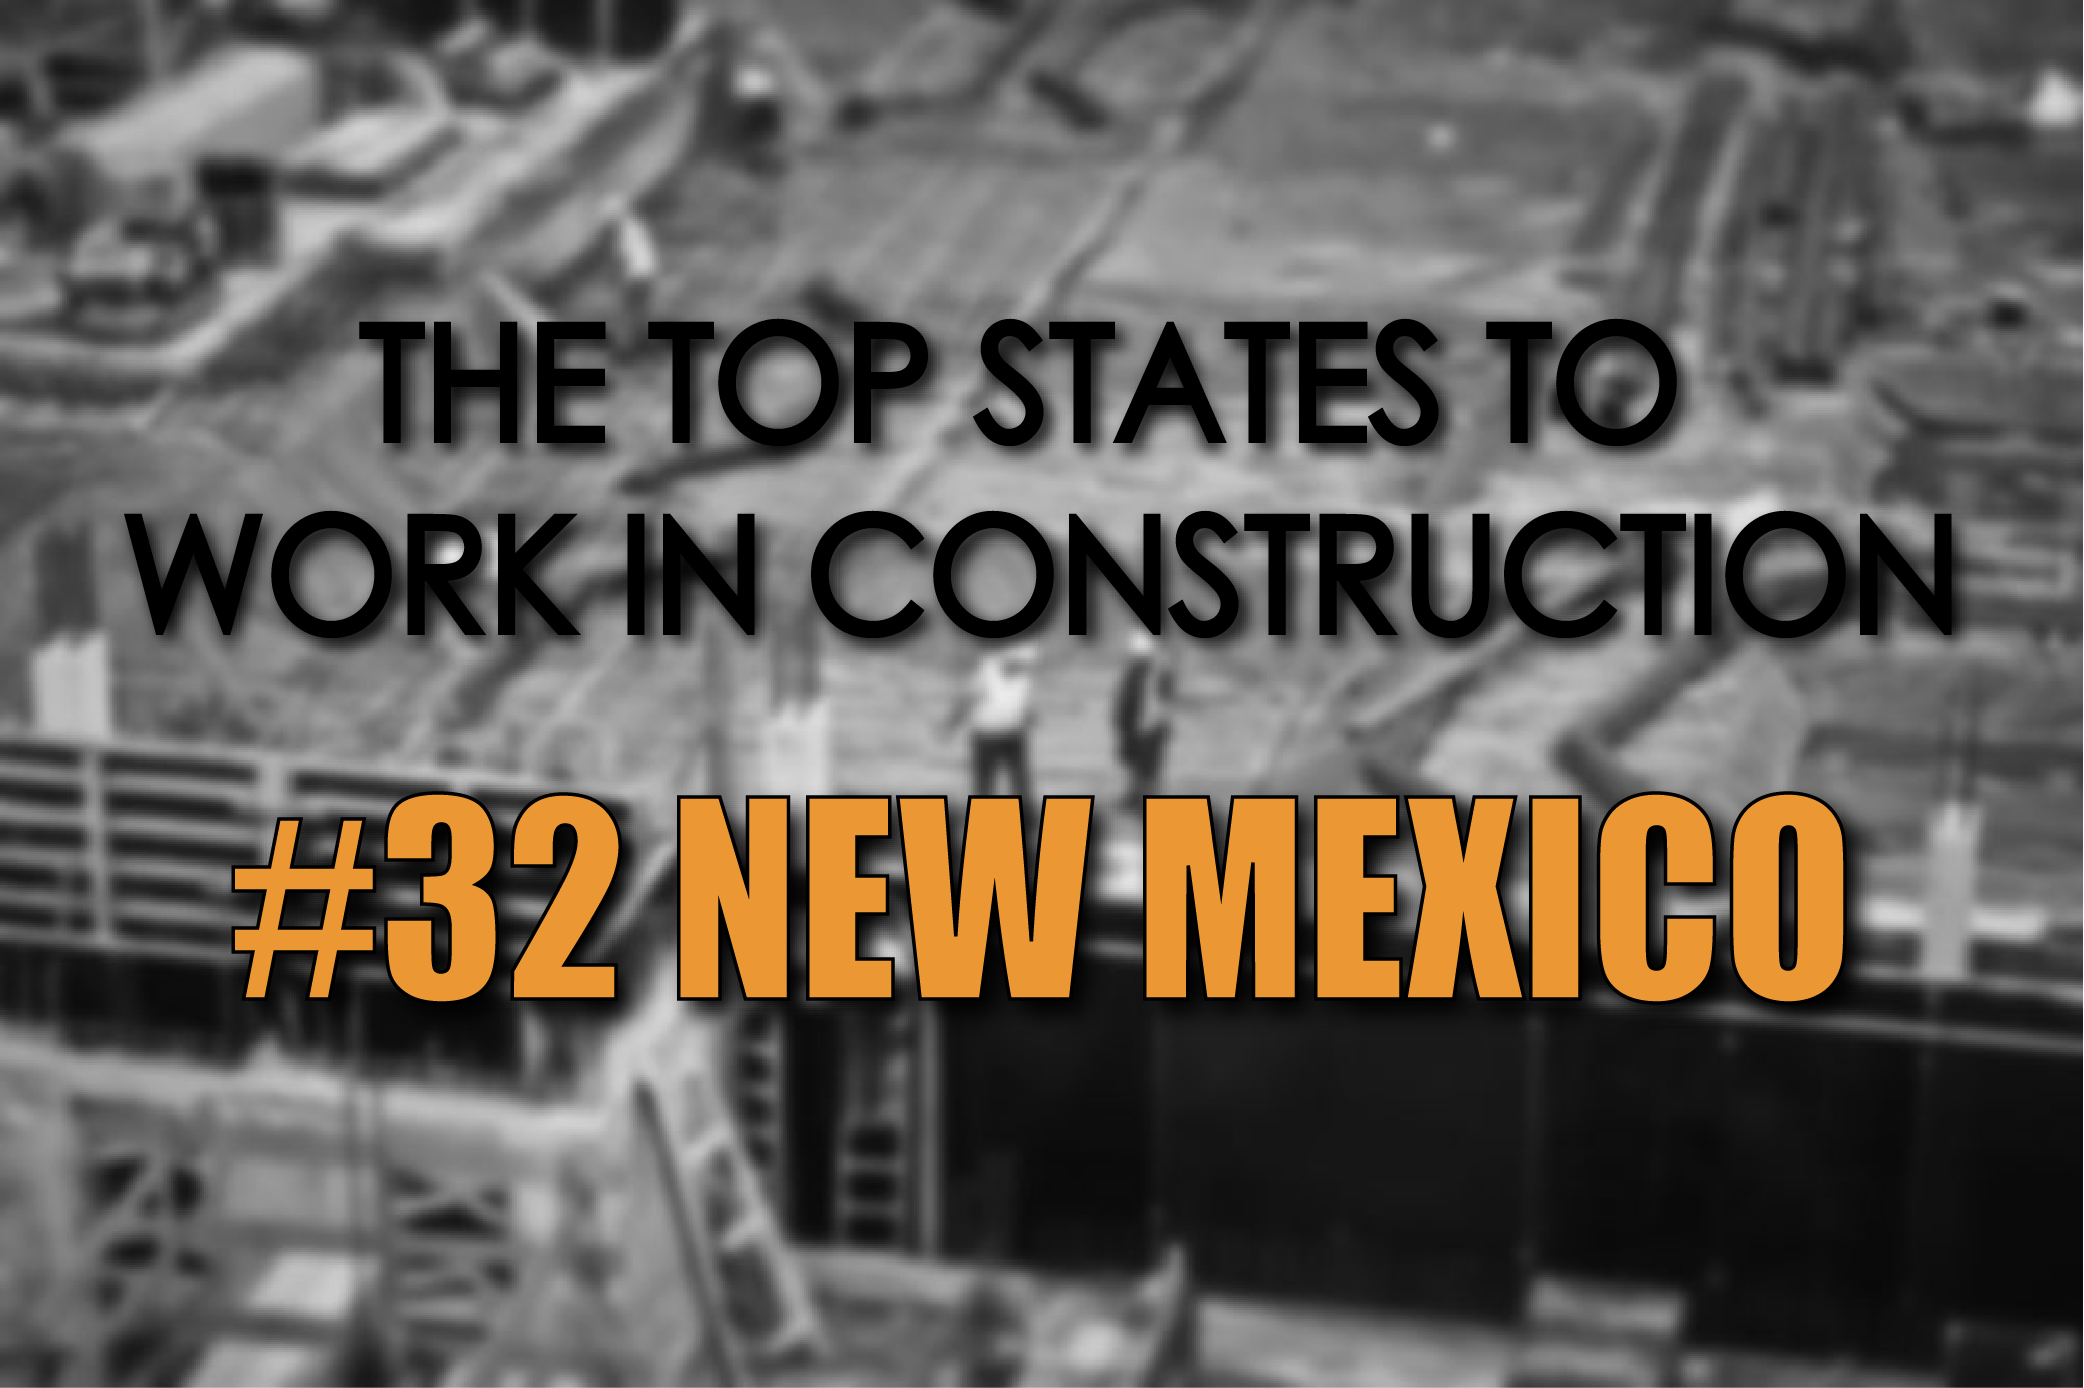 New Mexico best states to work in construction